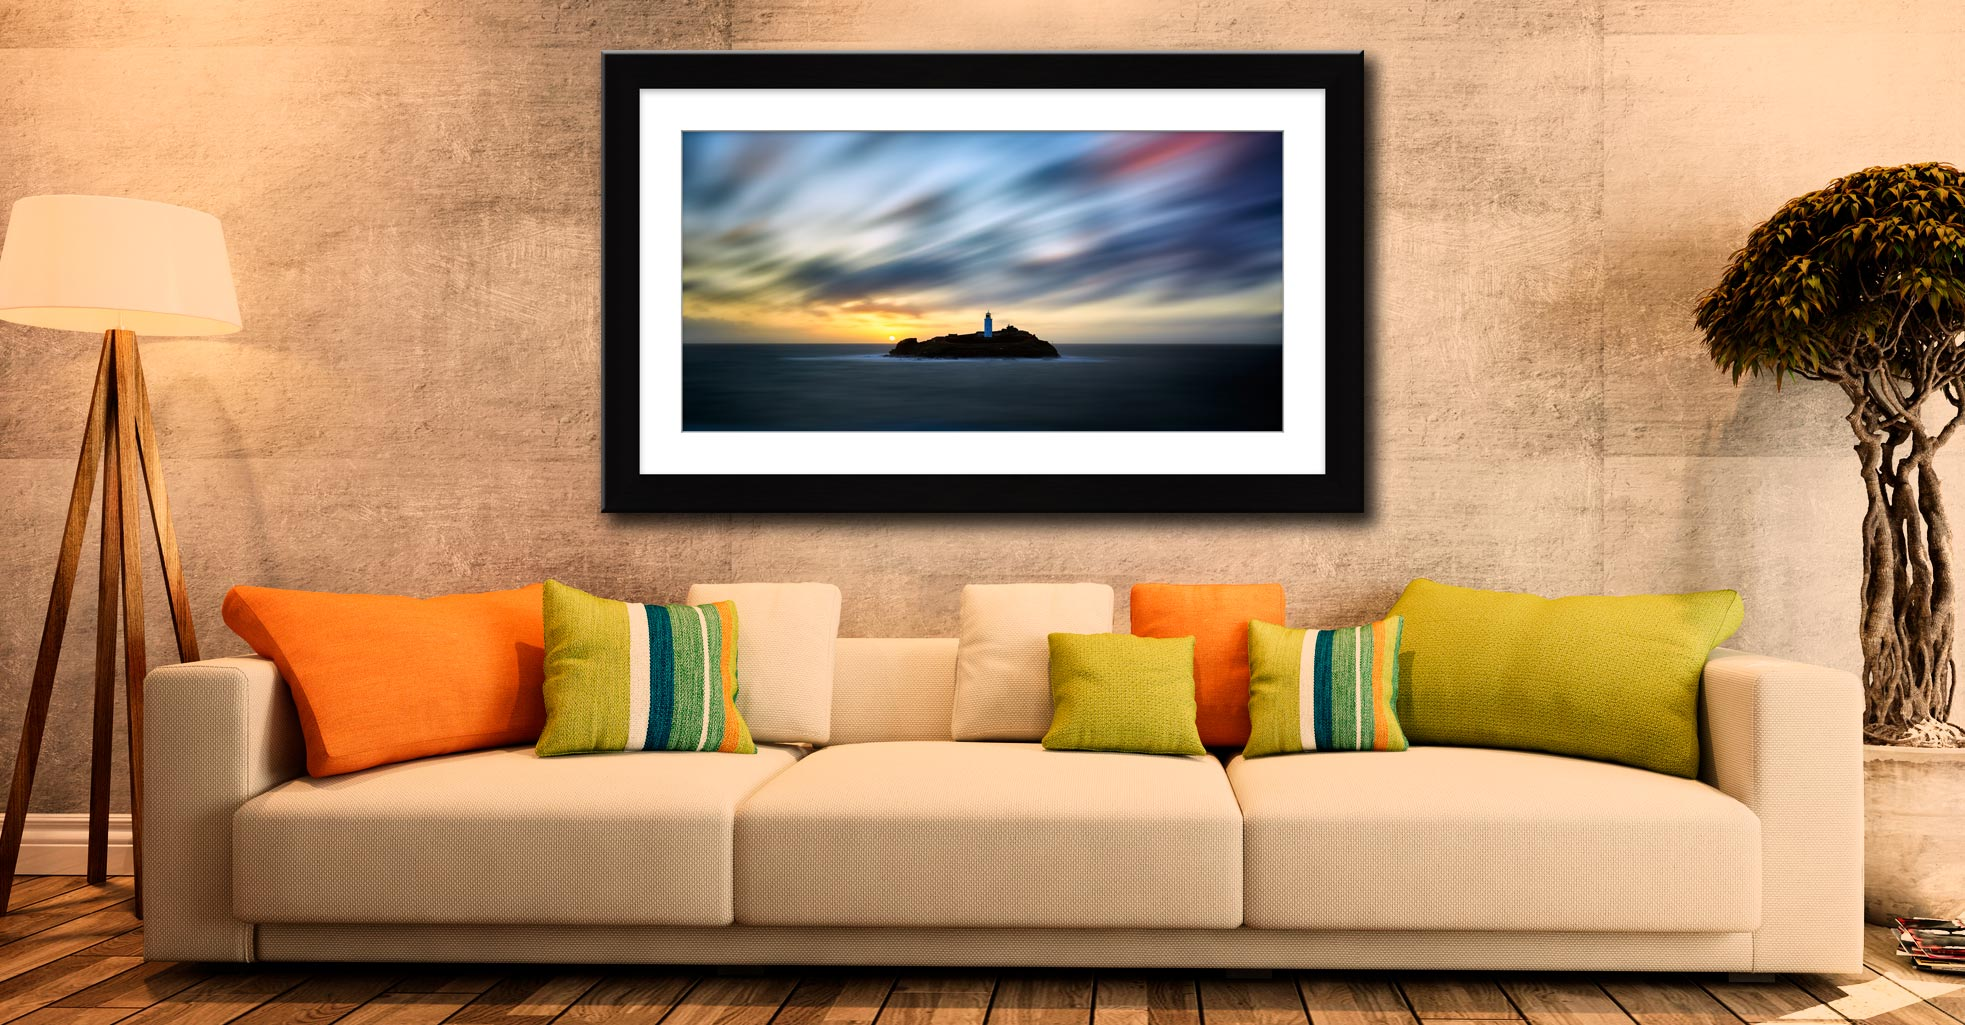 Windswept Sunset Godrevy Lighthouse - Framed Print with Mount on Wall